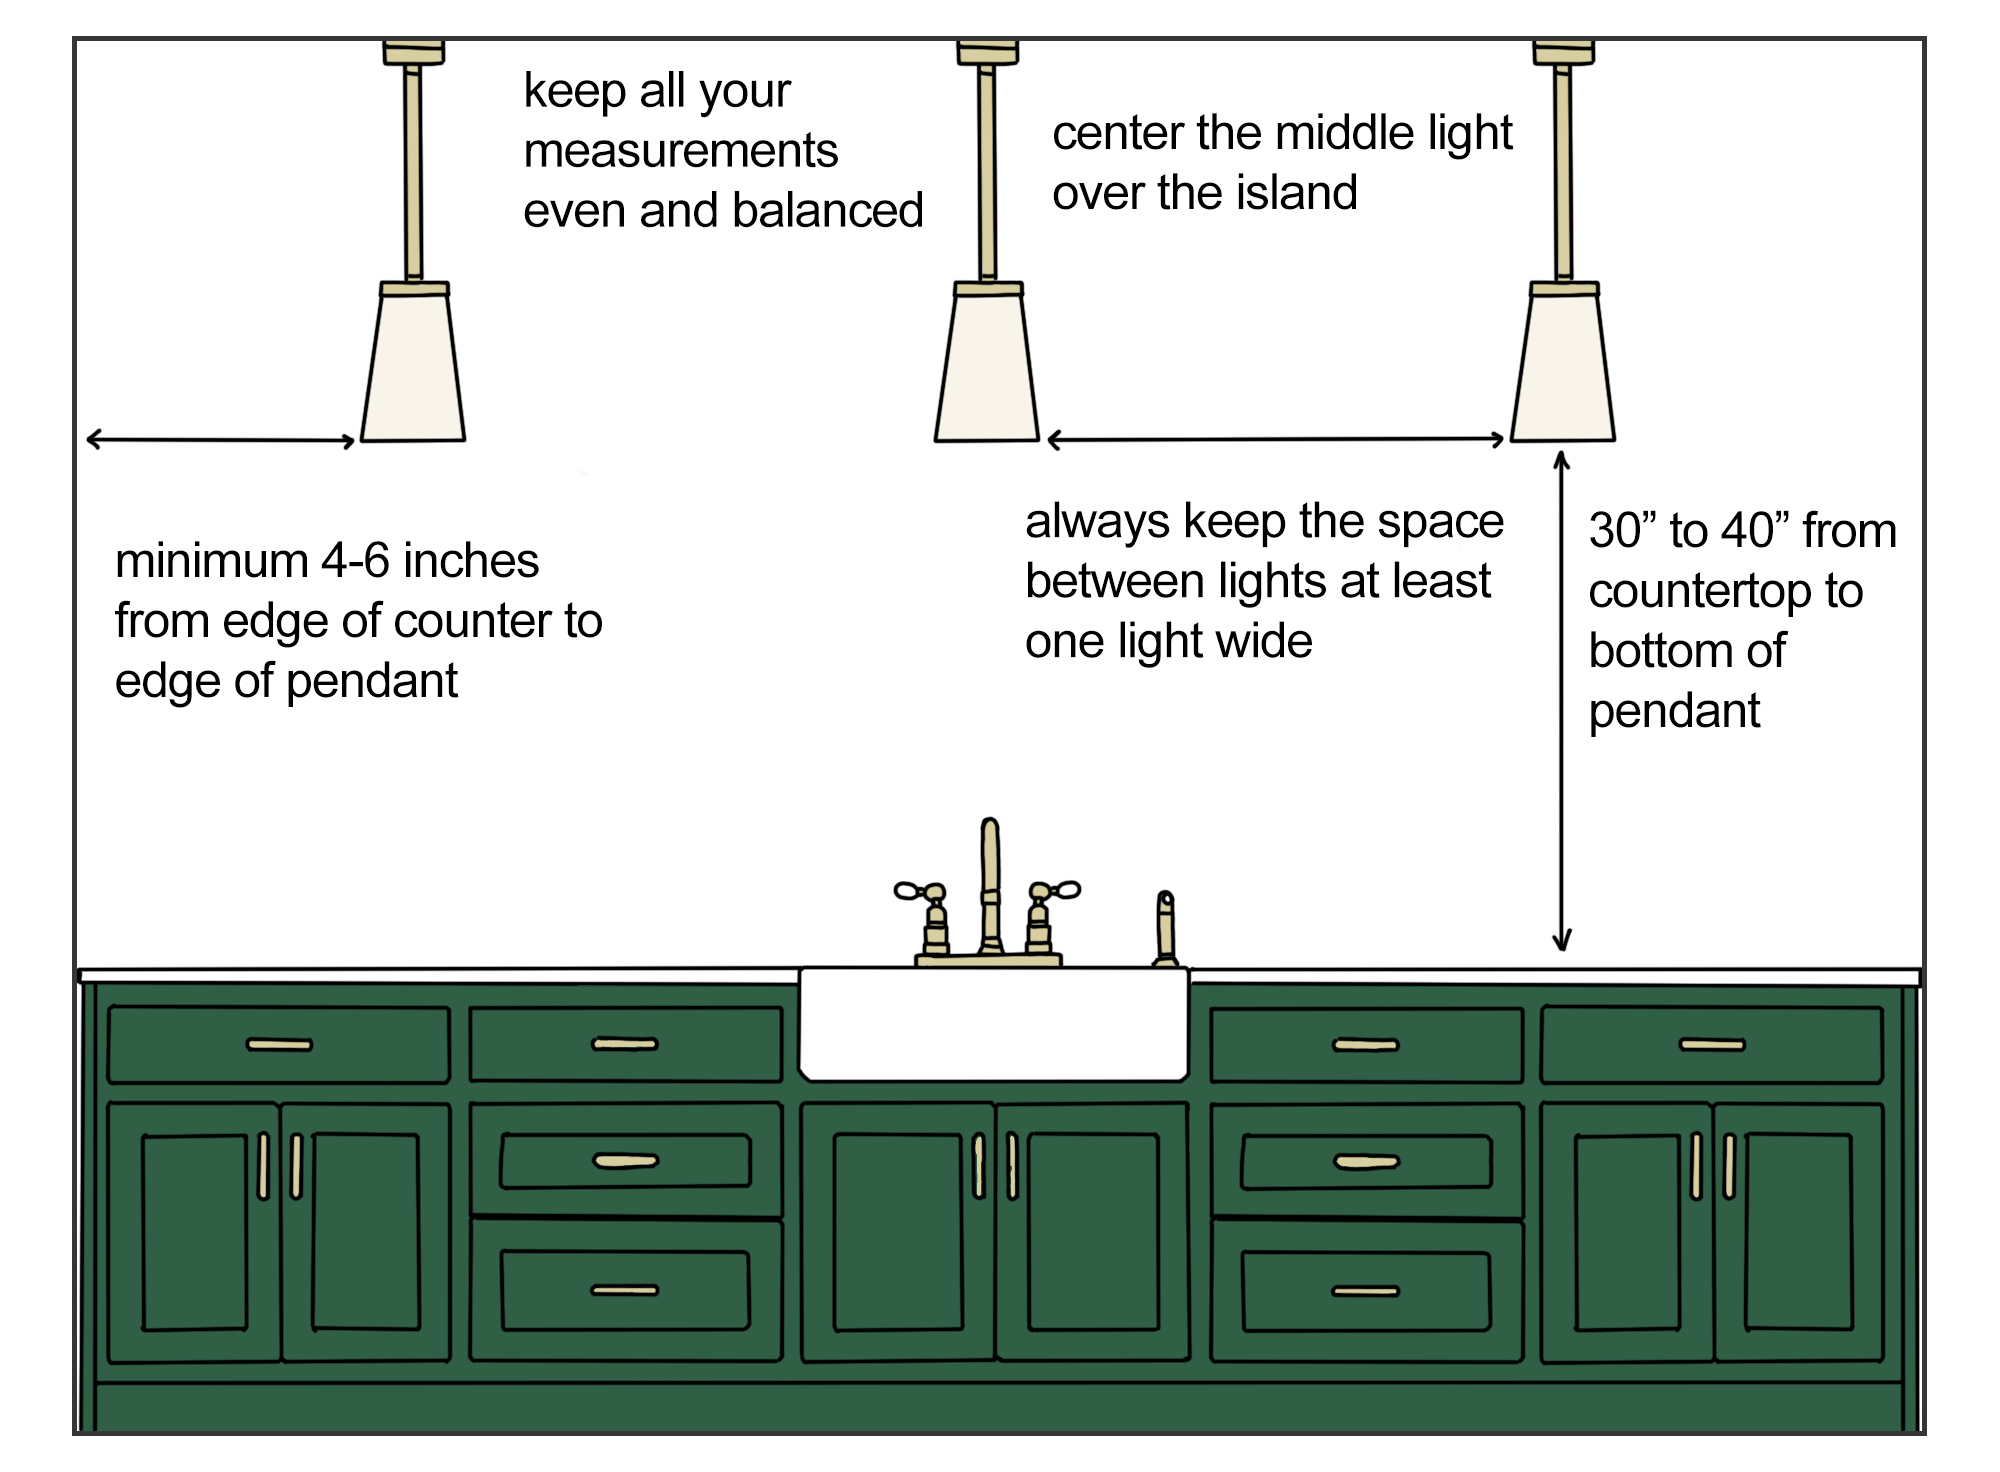 how to space three lights over an island inforgraphic